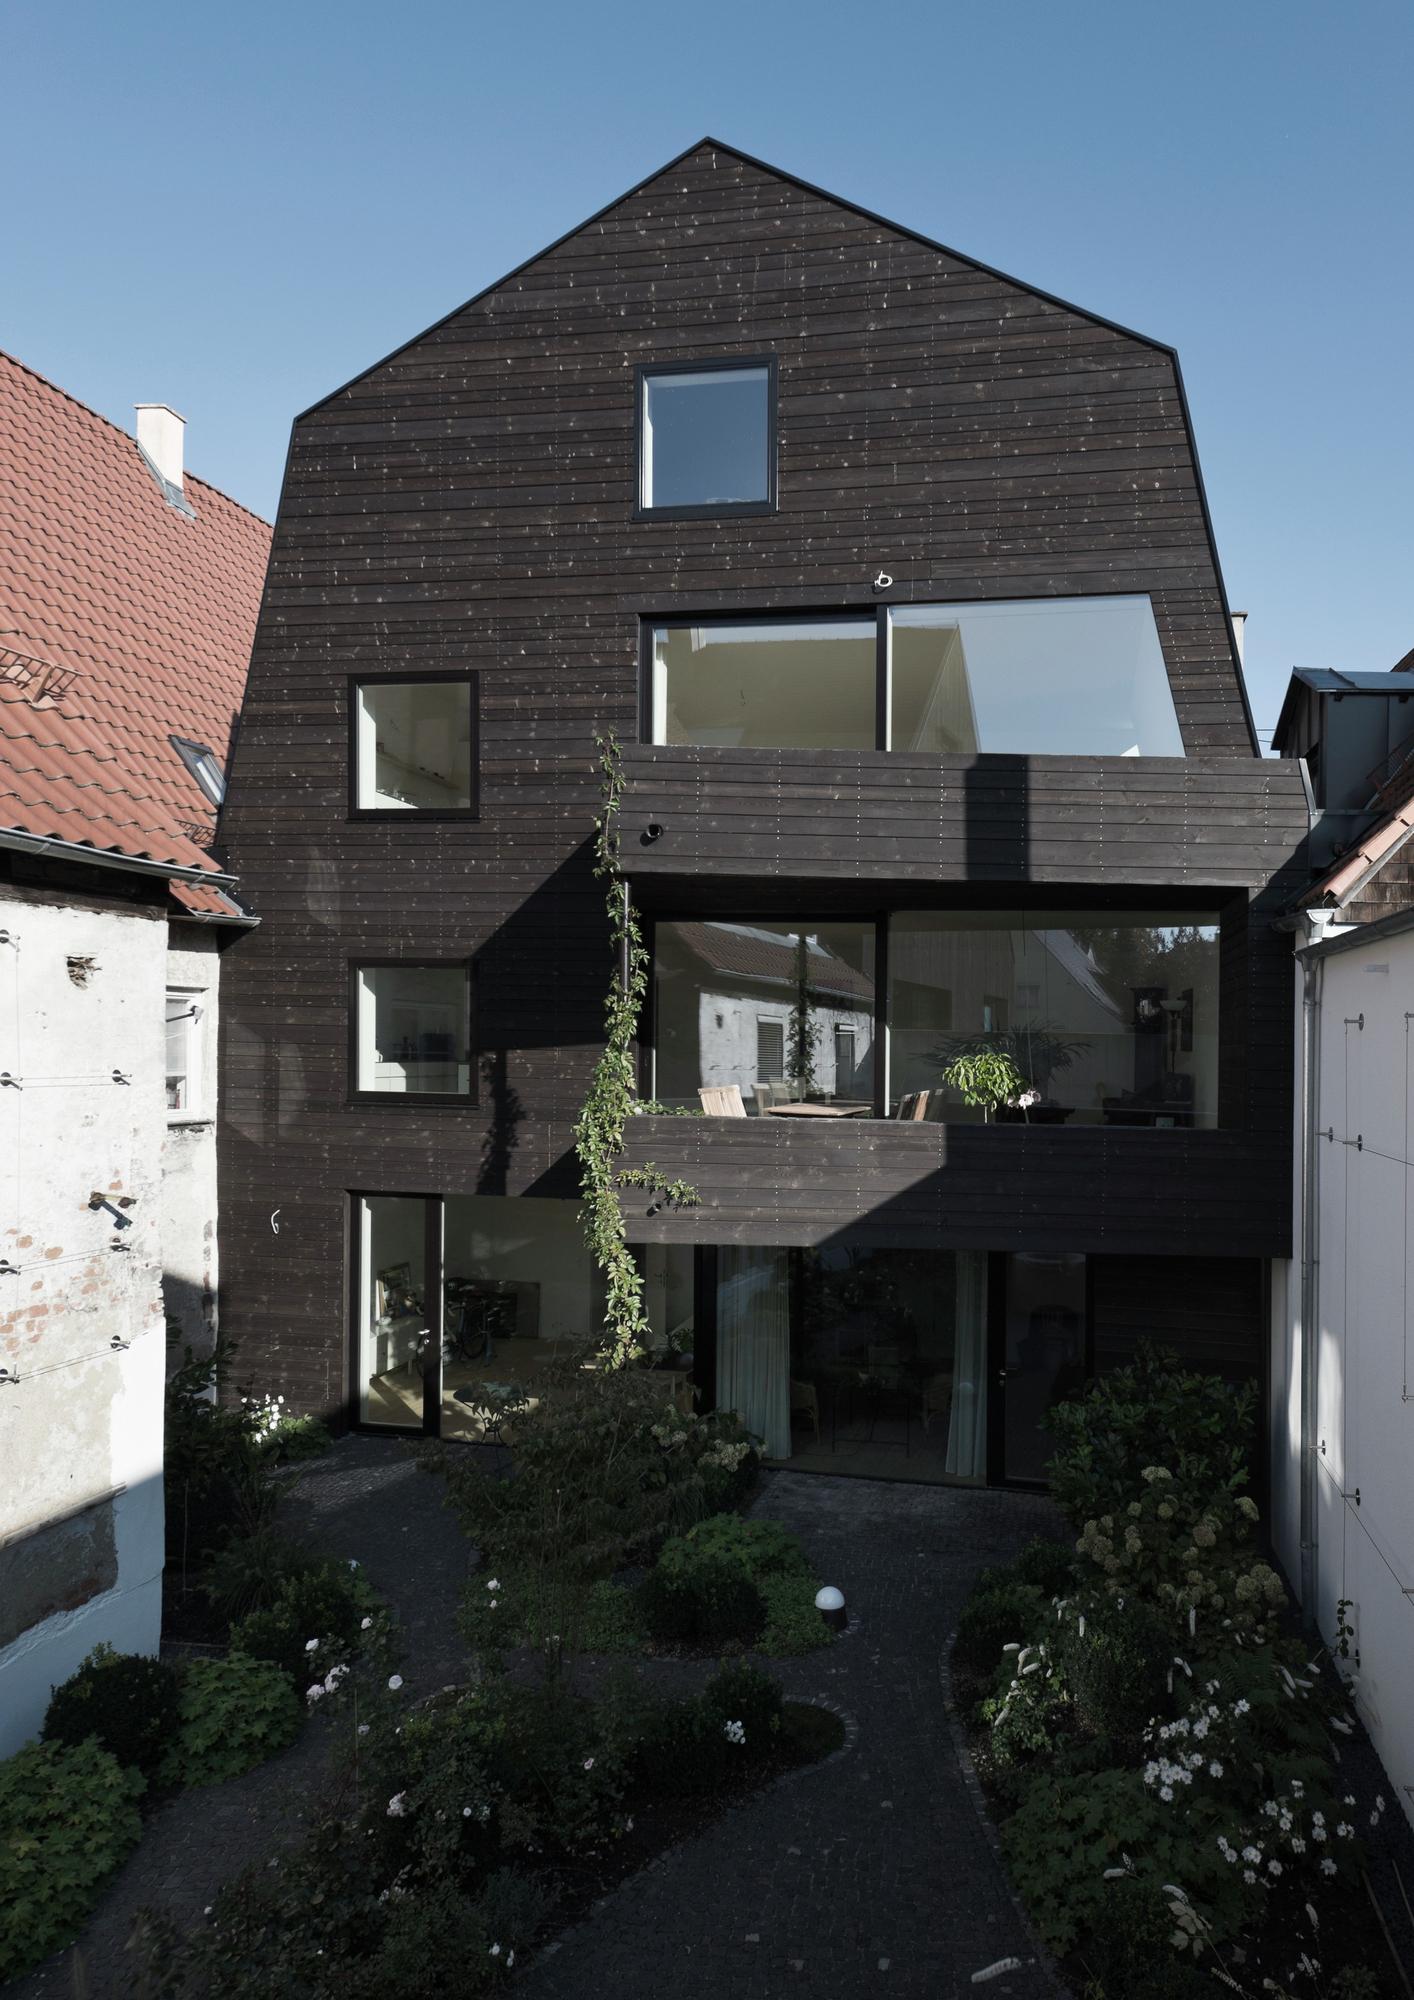 Gallery of house ke12 soho architektur 13 - Soho architekten ...